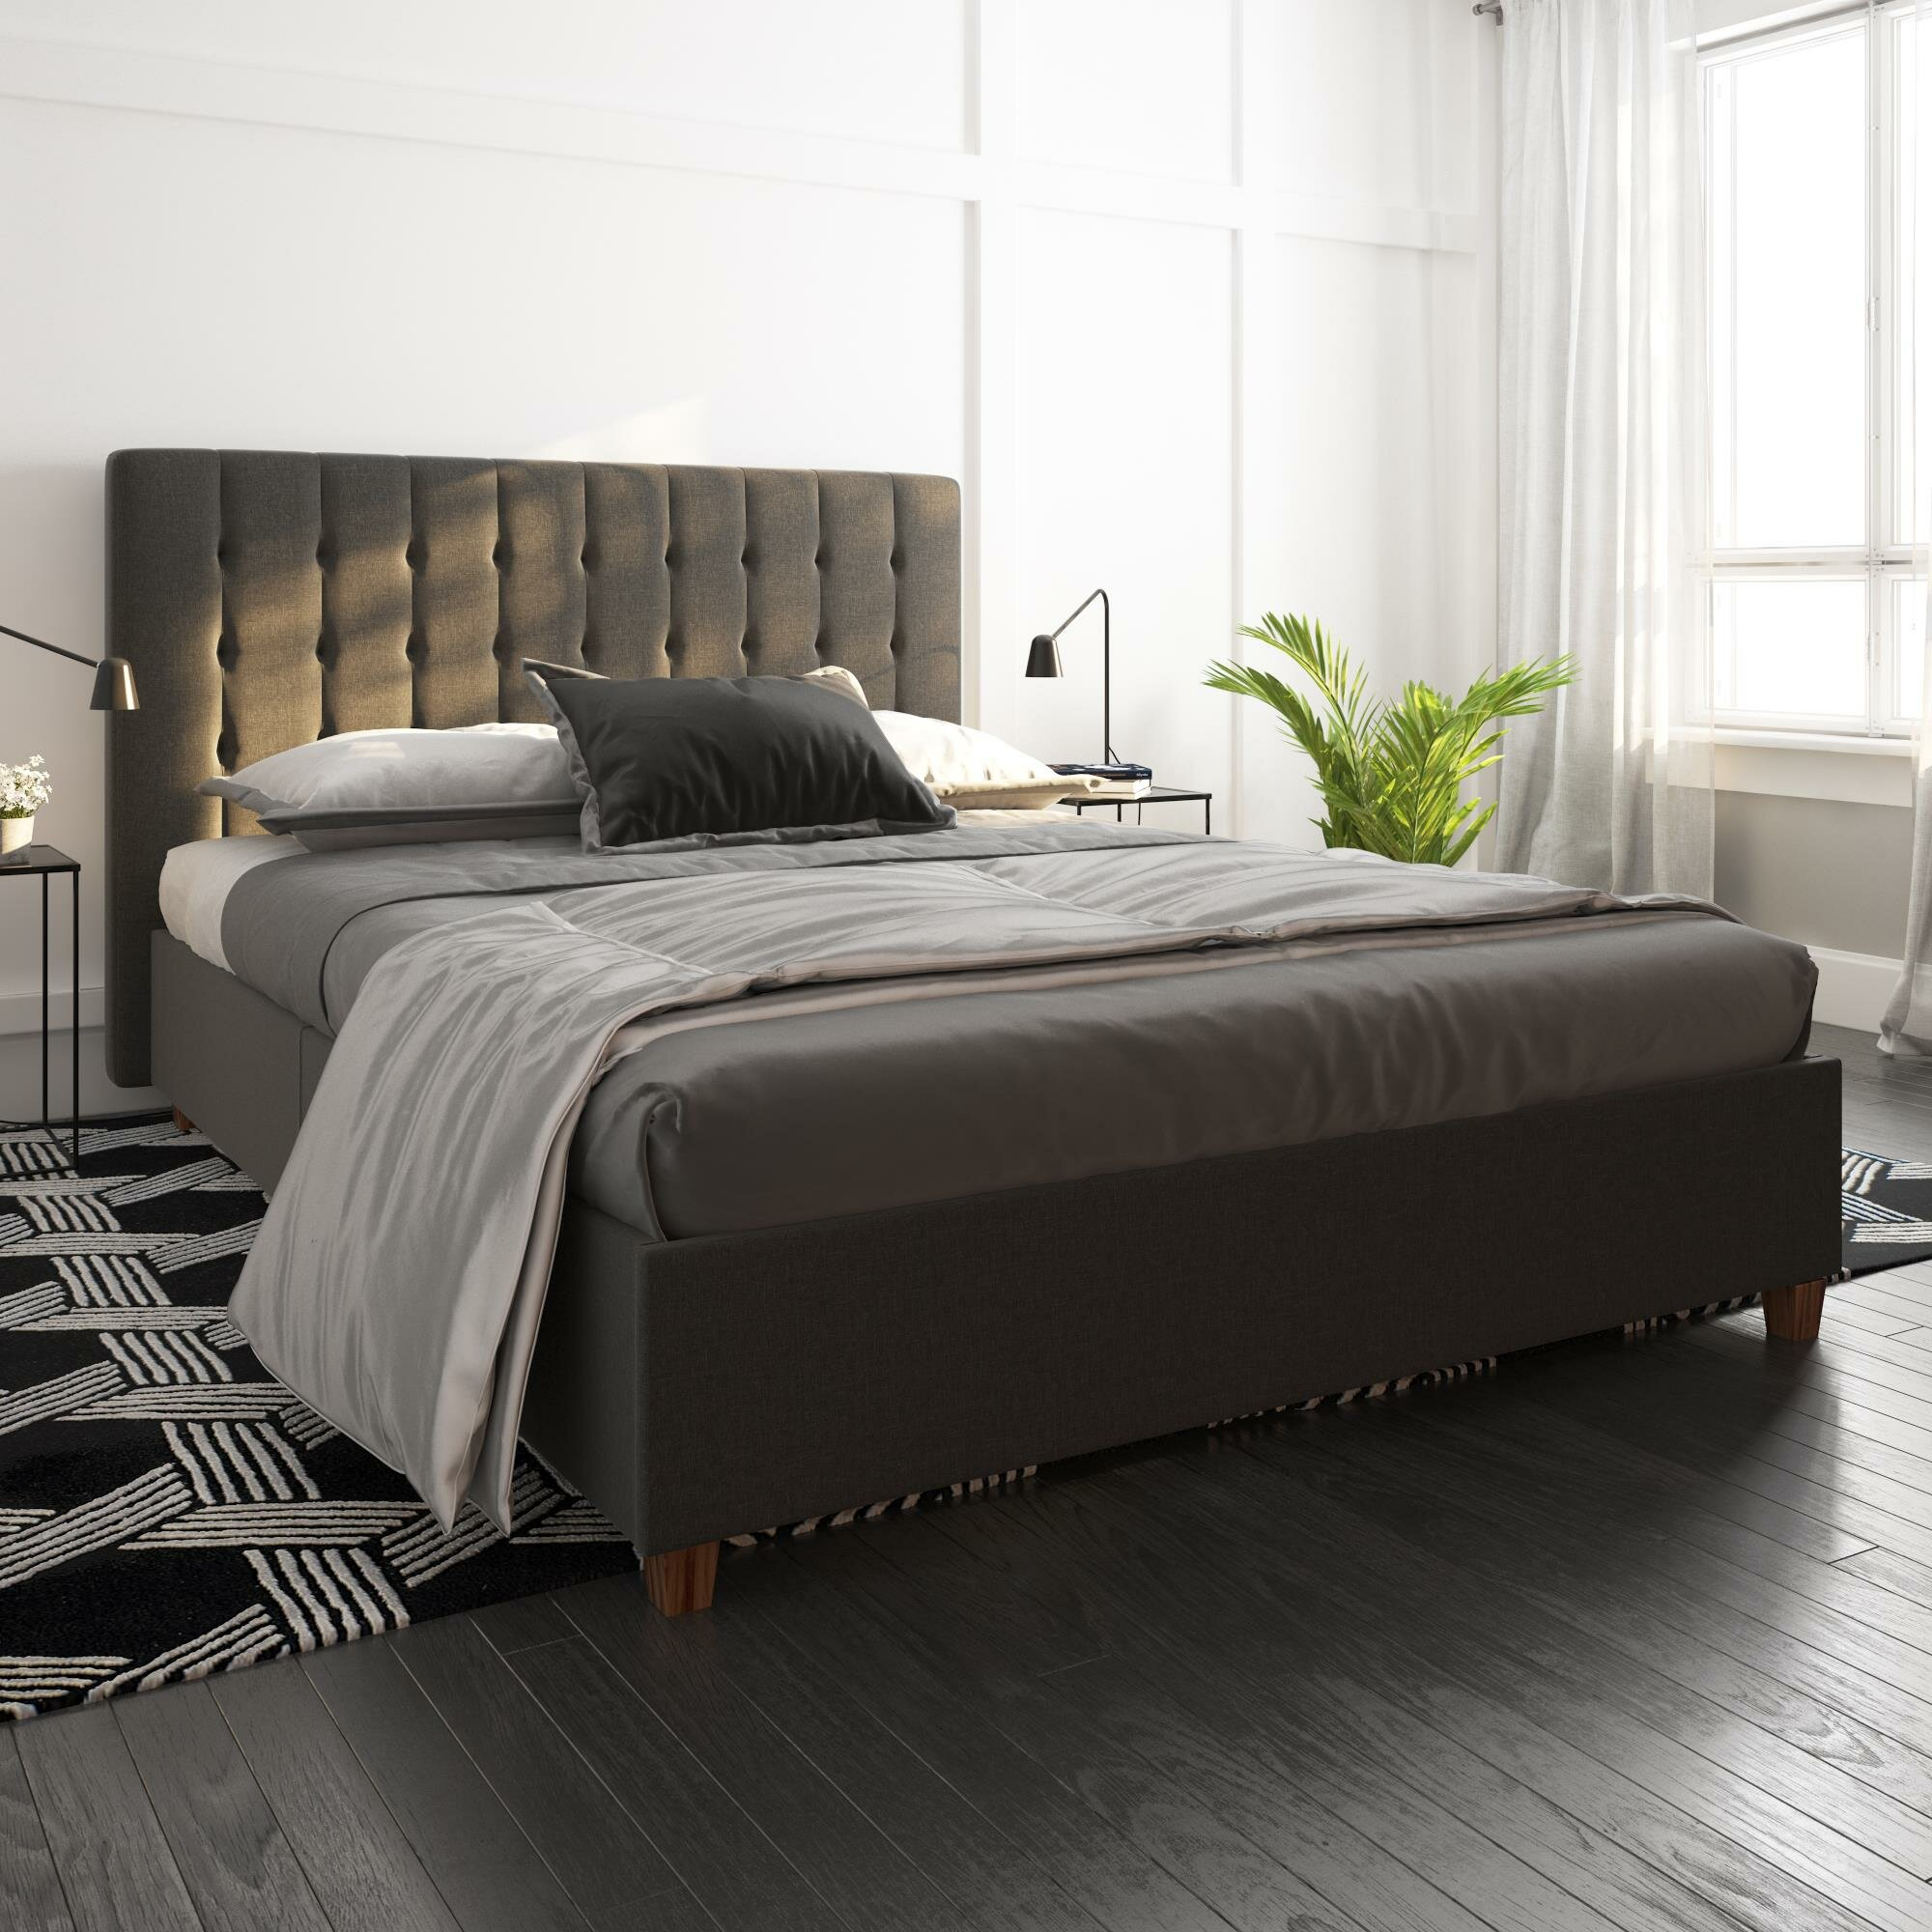 Picture of: Queen Size Upholstered Beds You Ll Love In 2020 Wayfair